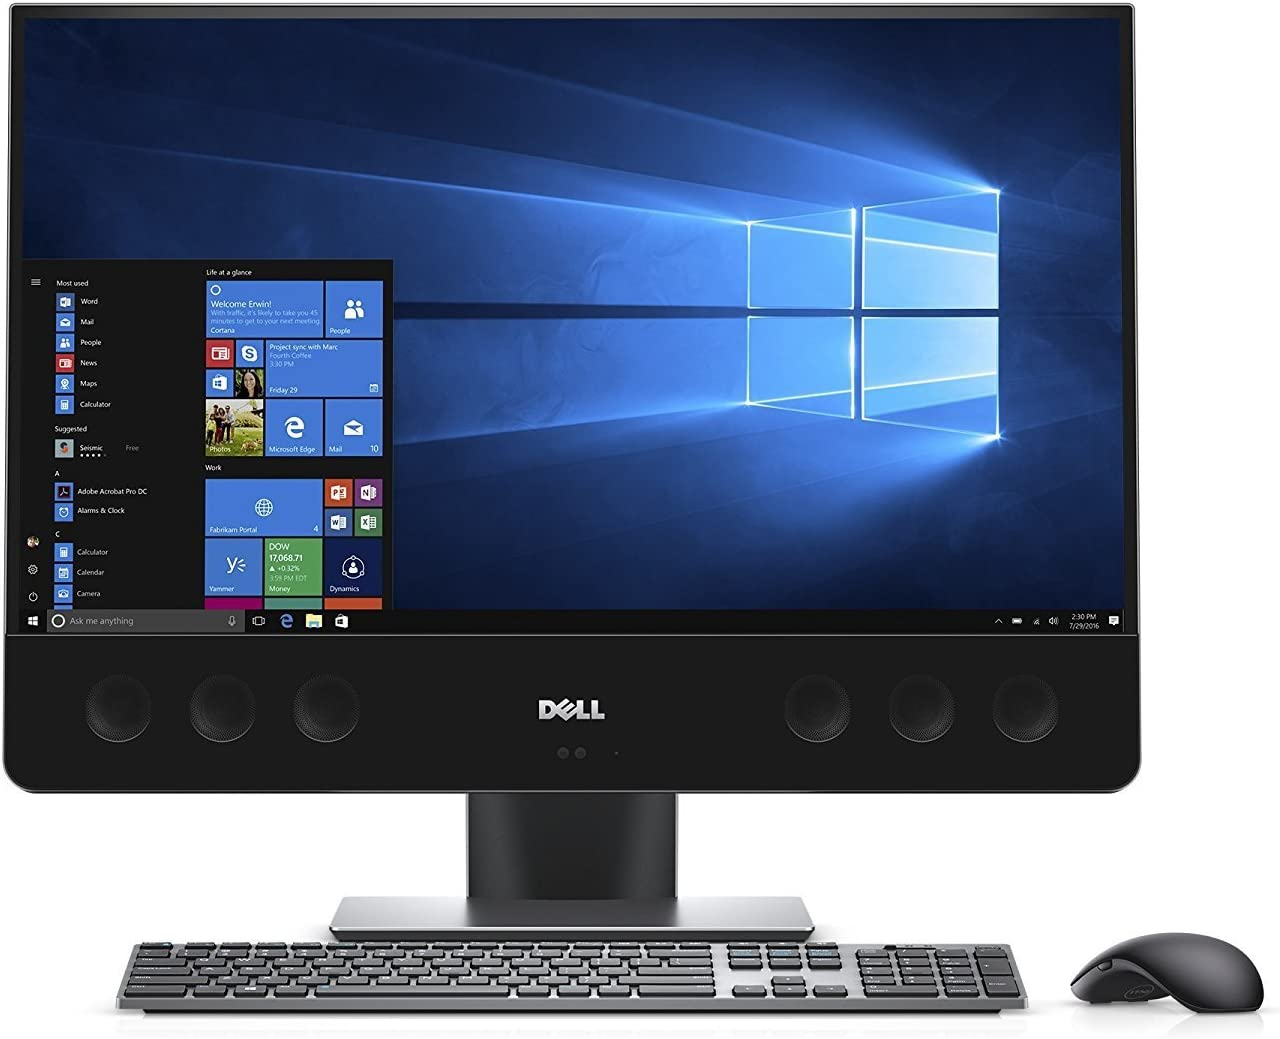 "Dell XPS 7760 27"" Touch 4K Ultra HD All-in-One Desktop - Intel Core i7-7700 7th Gen Quad-Core up to 4.2 GHz, 32GB DDR4 Memory, 1TB x 2 SSD, Windows 10 (Renewed)"